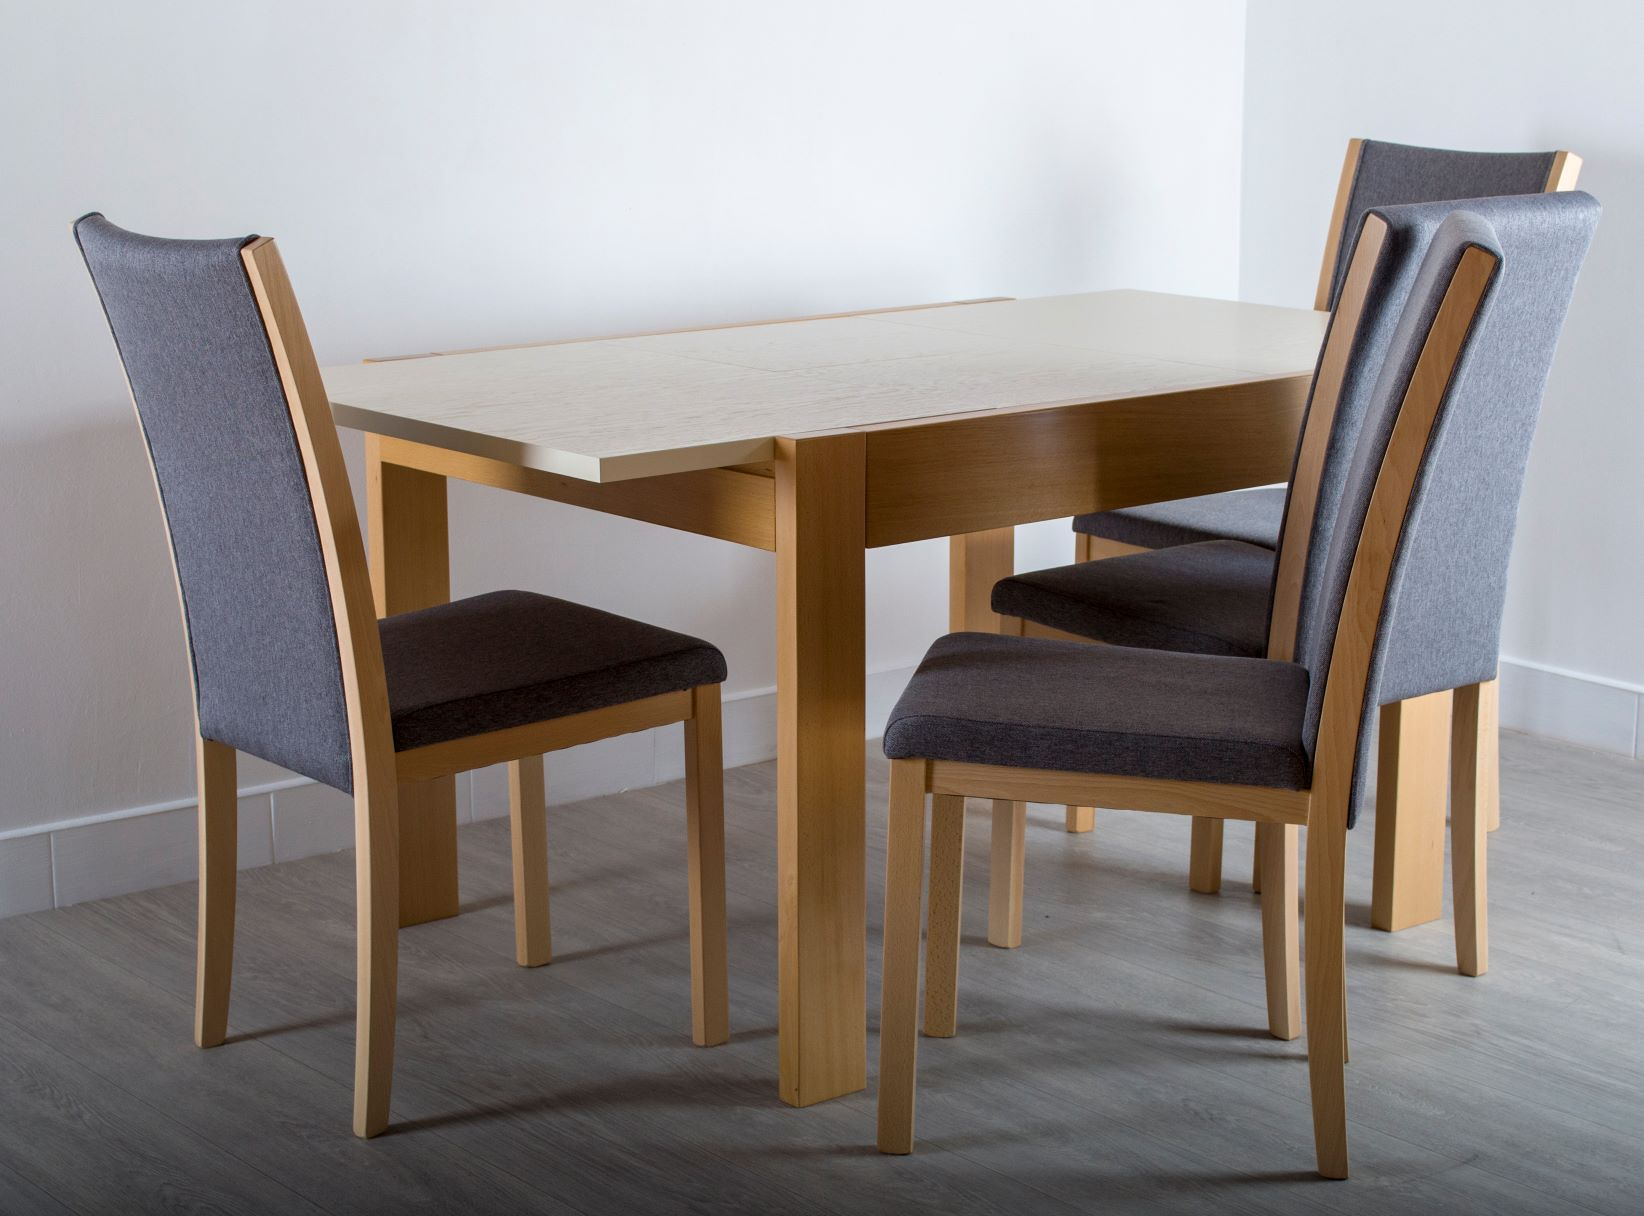 Extendable Table Neapol and Lur Chairs from GVA Interiors